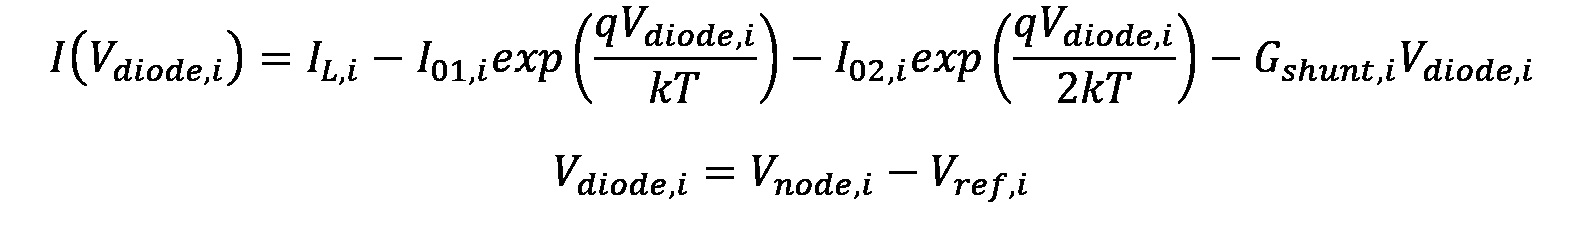 Equation: Solar Cell Equivalent Circuit